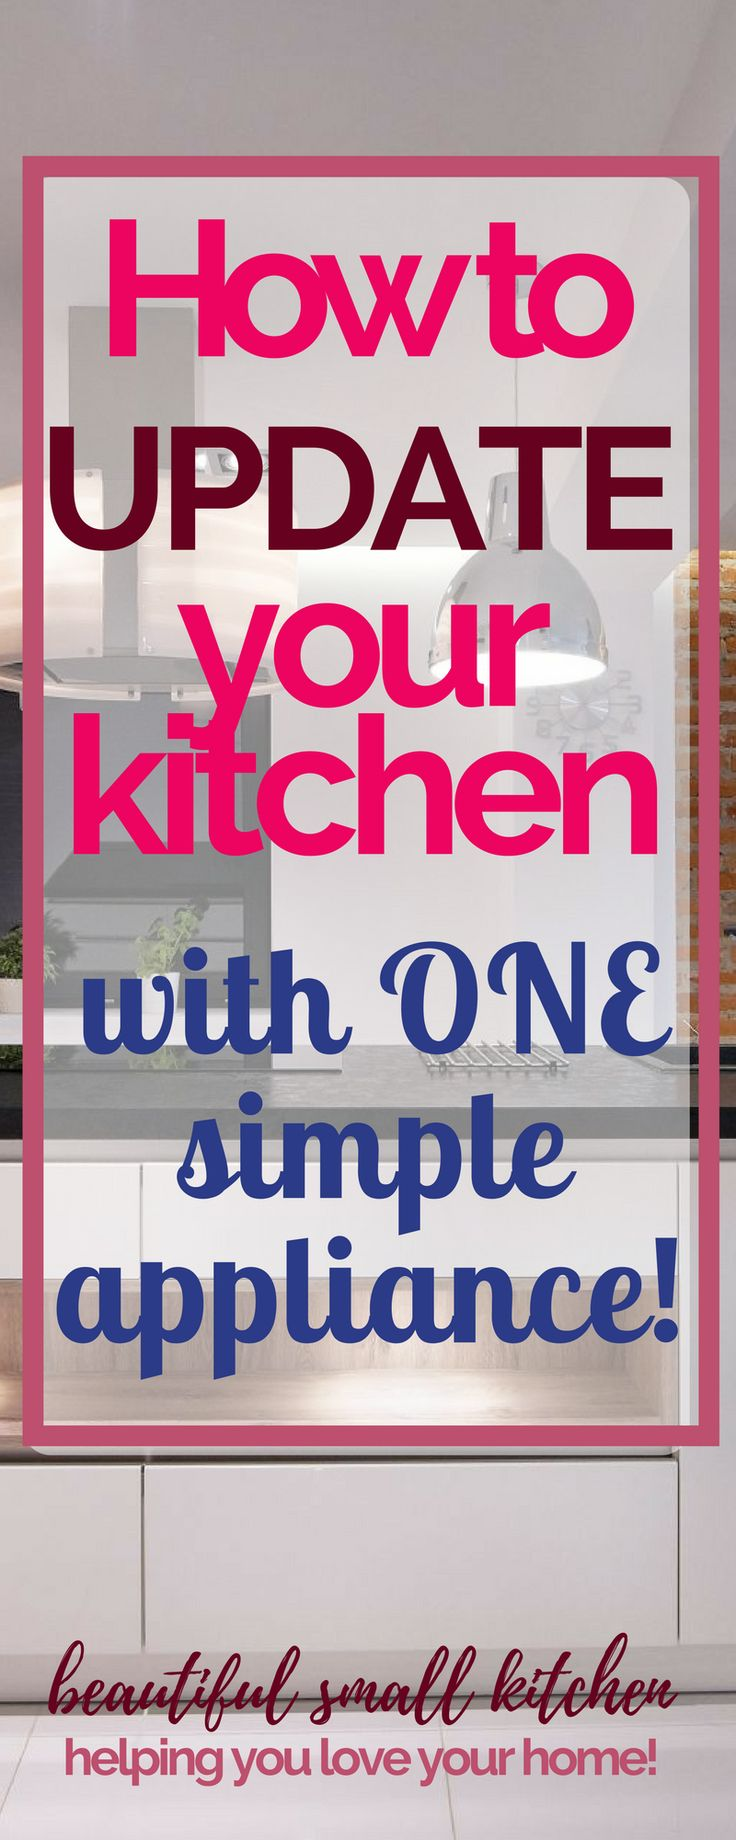 Simple easy kitchen makeover! Does your kitchen need an update? Changing this one appliance will make all the difference. And it's so simple to do and won't break the bank - take a look at the different options. #kitchenremodel #kitchen #kitchenideas #retro